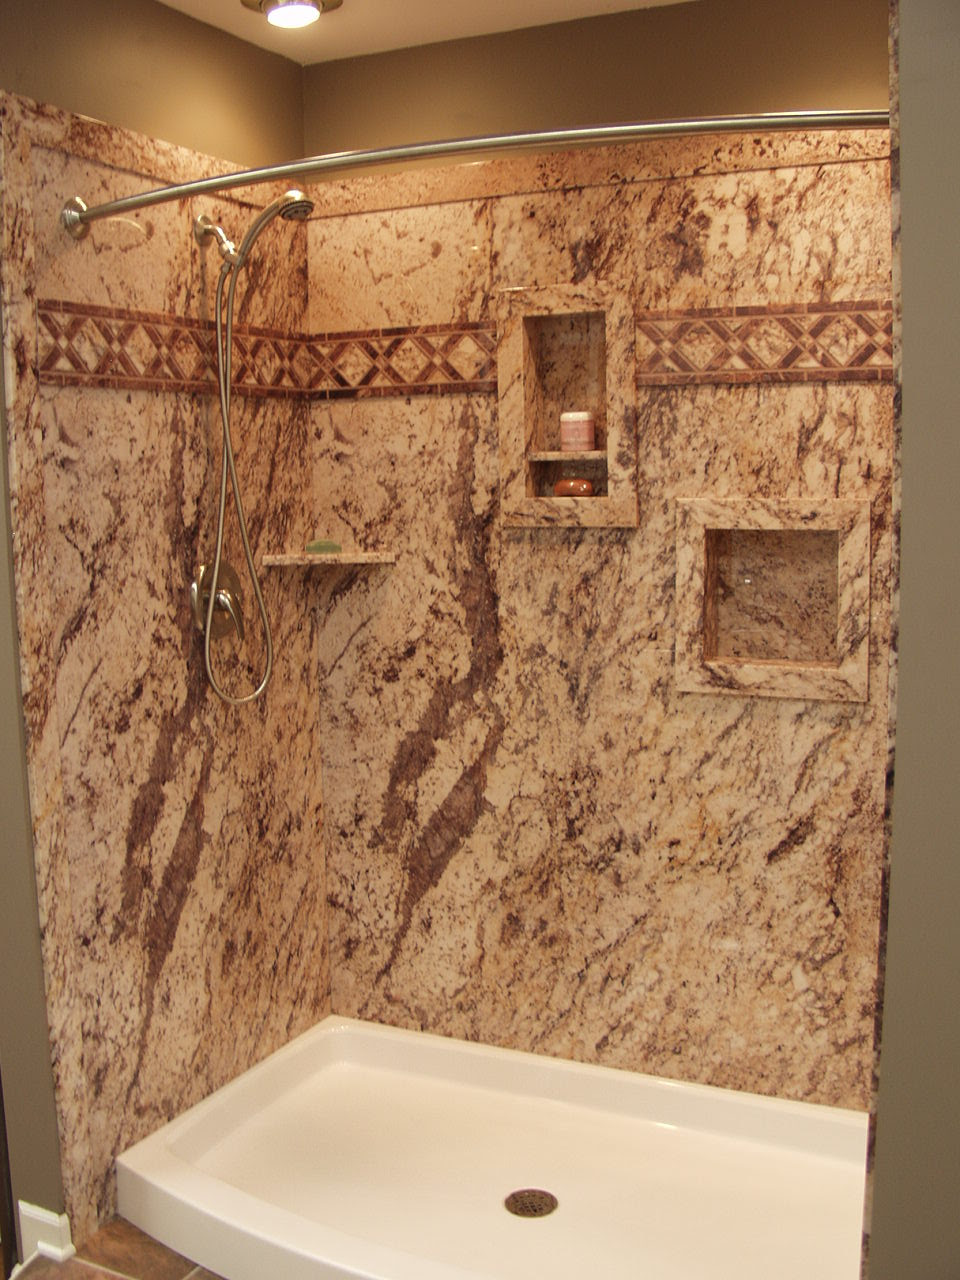 New DIY Shower and Tub Wall Panel Kits from Innovate ...